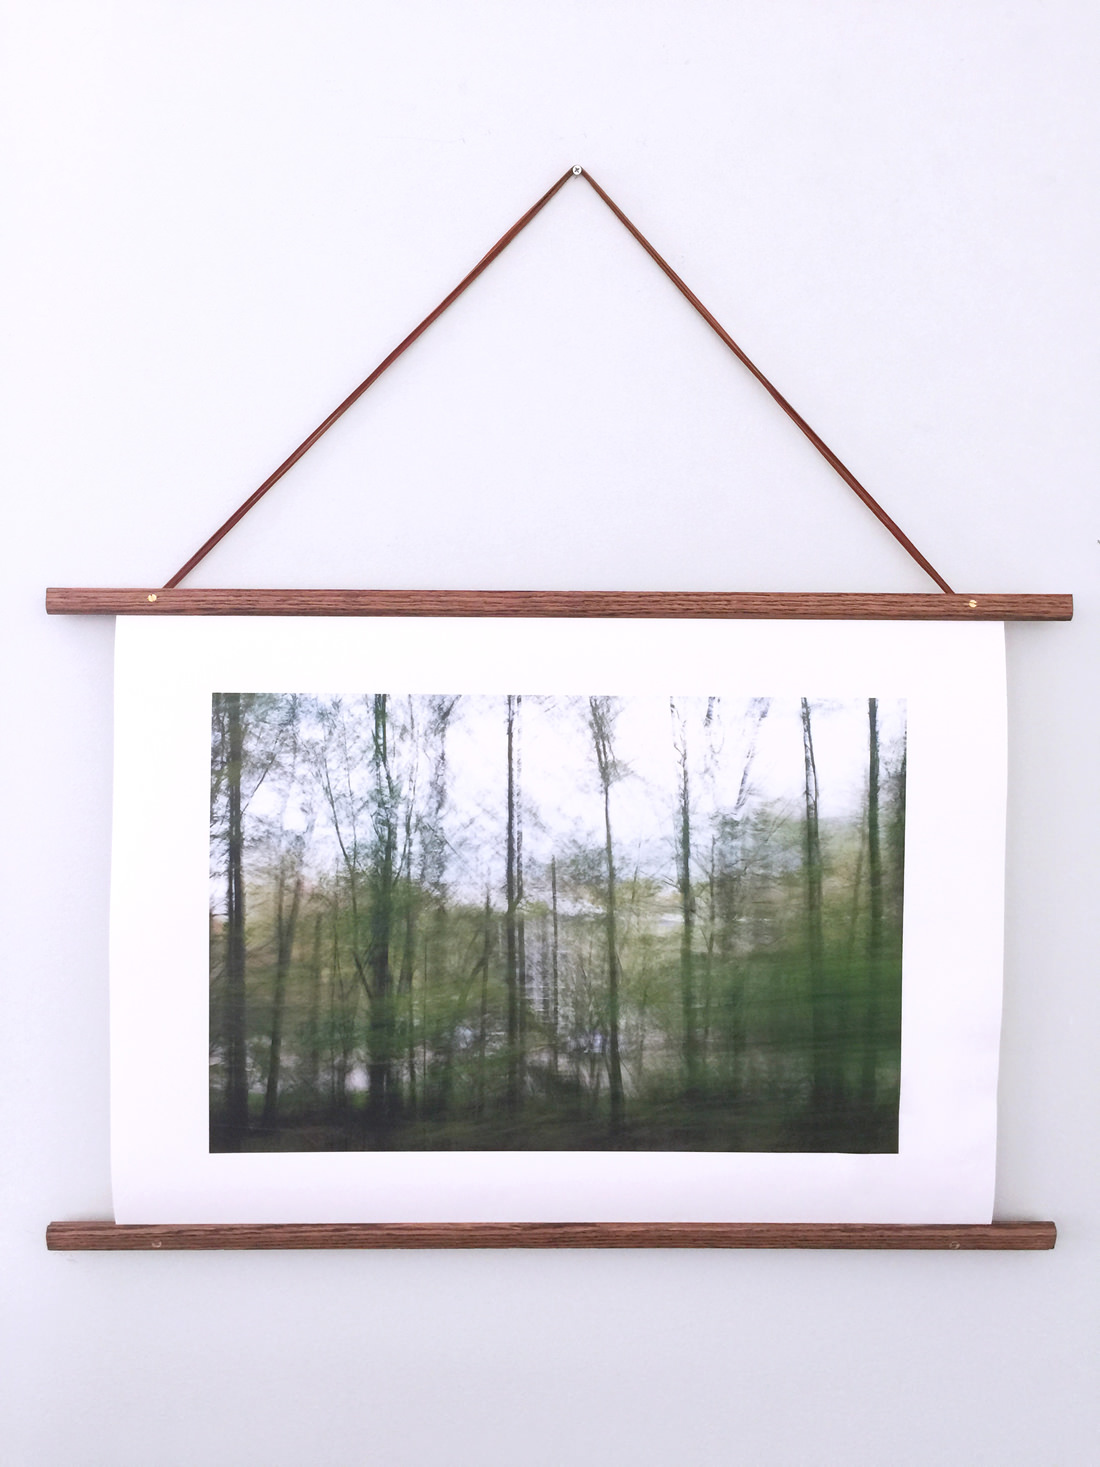 DIY Wooden Poster Frame | Snaps: A Blog from SnapBox